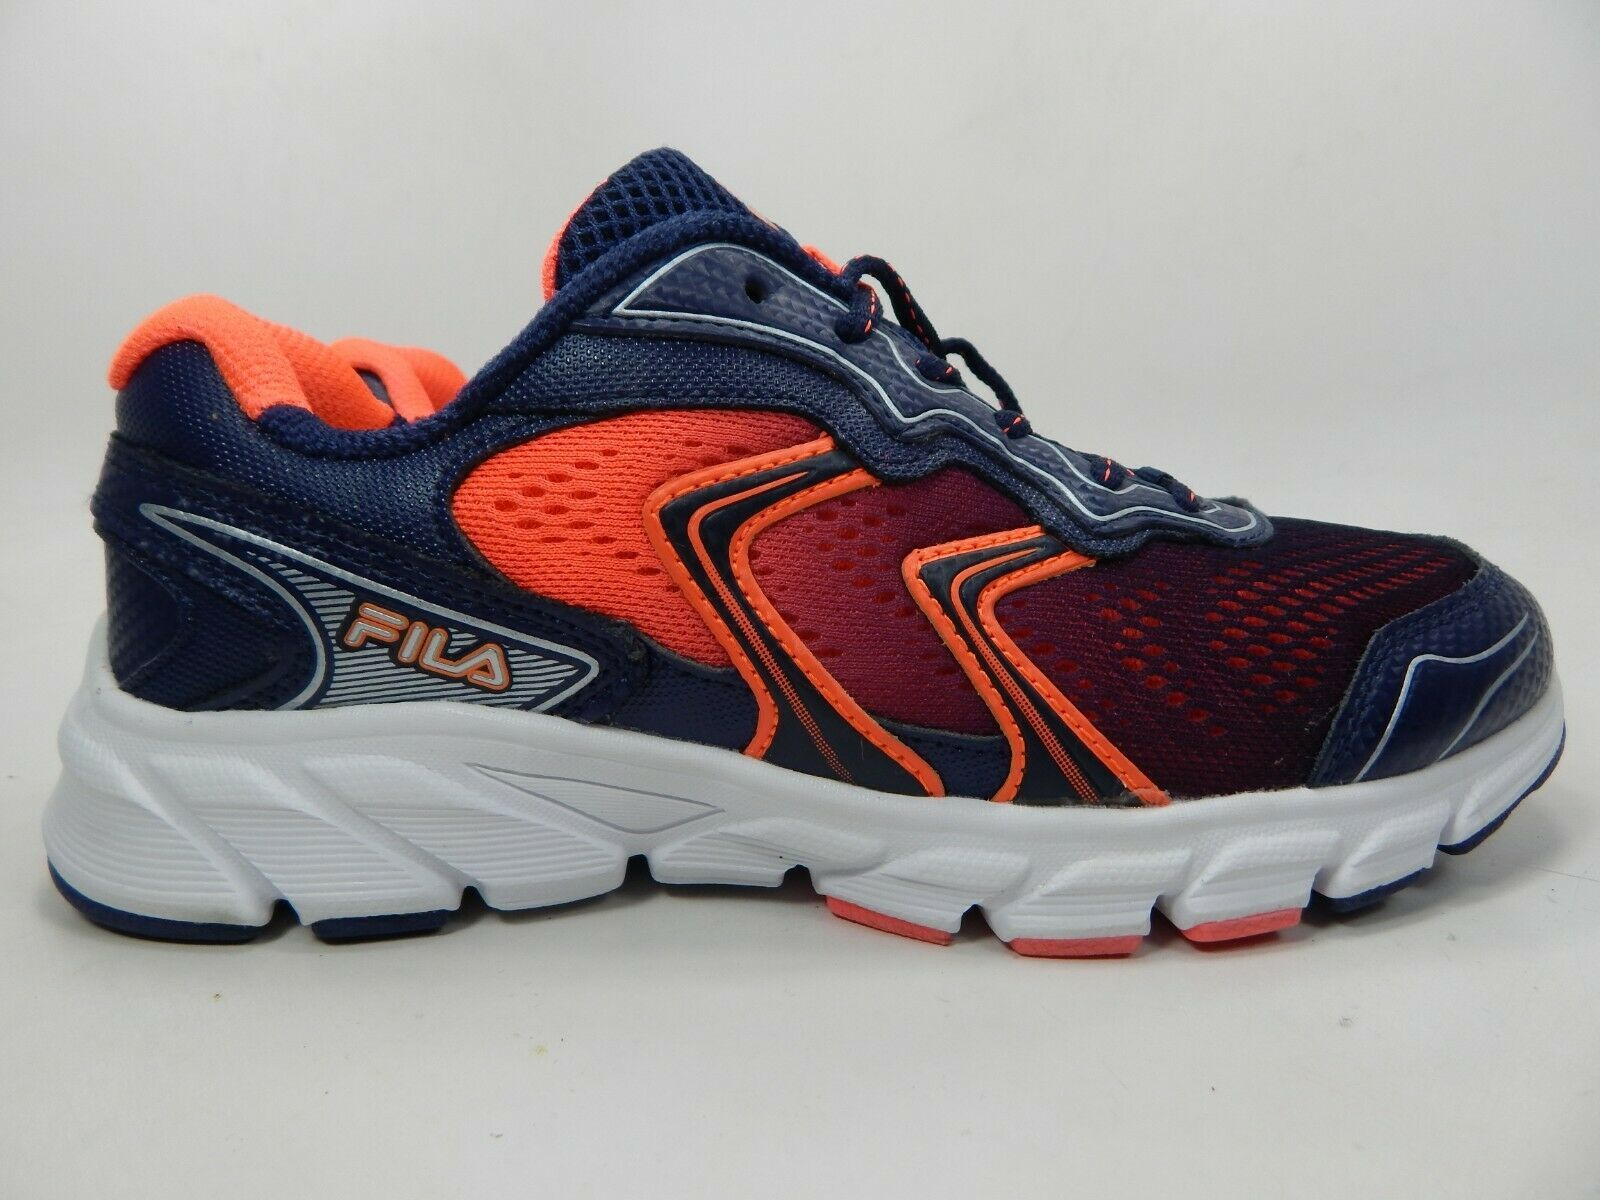 4149226bdda6 Fila Stellaray Low Size US 9 M (B) Womens Running Shoes Blue ...